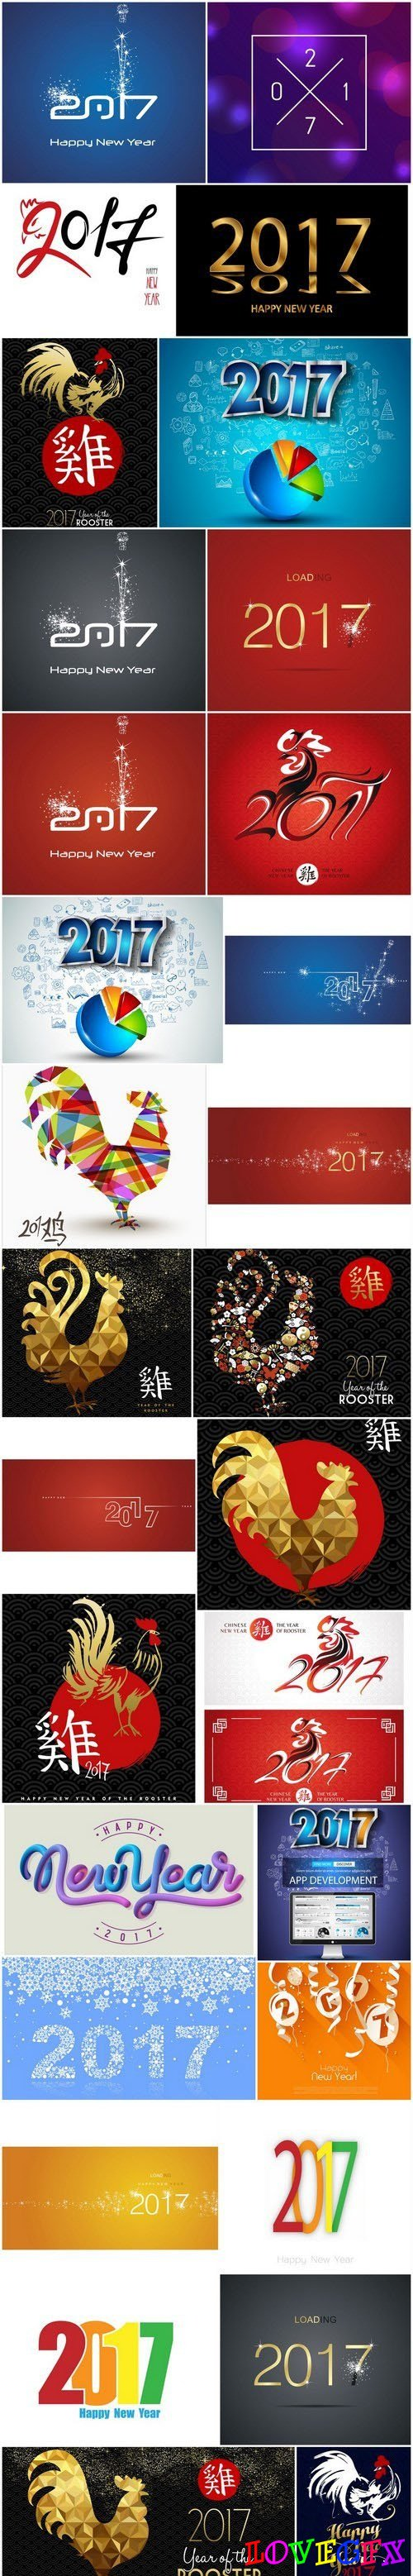 2017 - The Year of Fire Rooster 2 - Set of 30xEPS, AI Professional Vector Stock